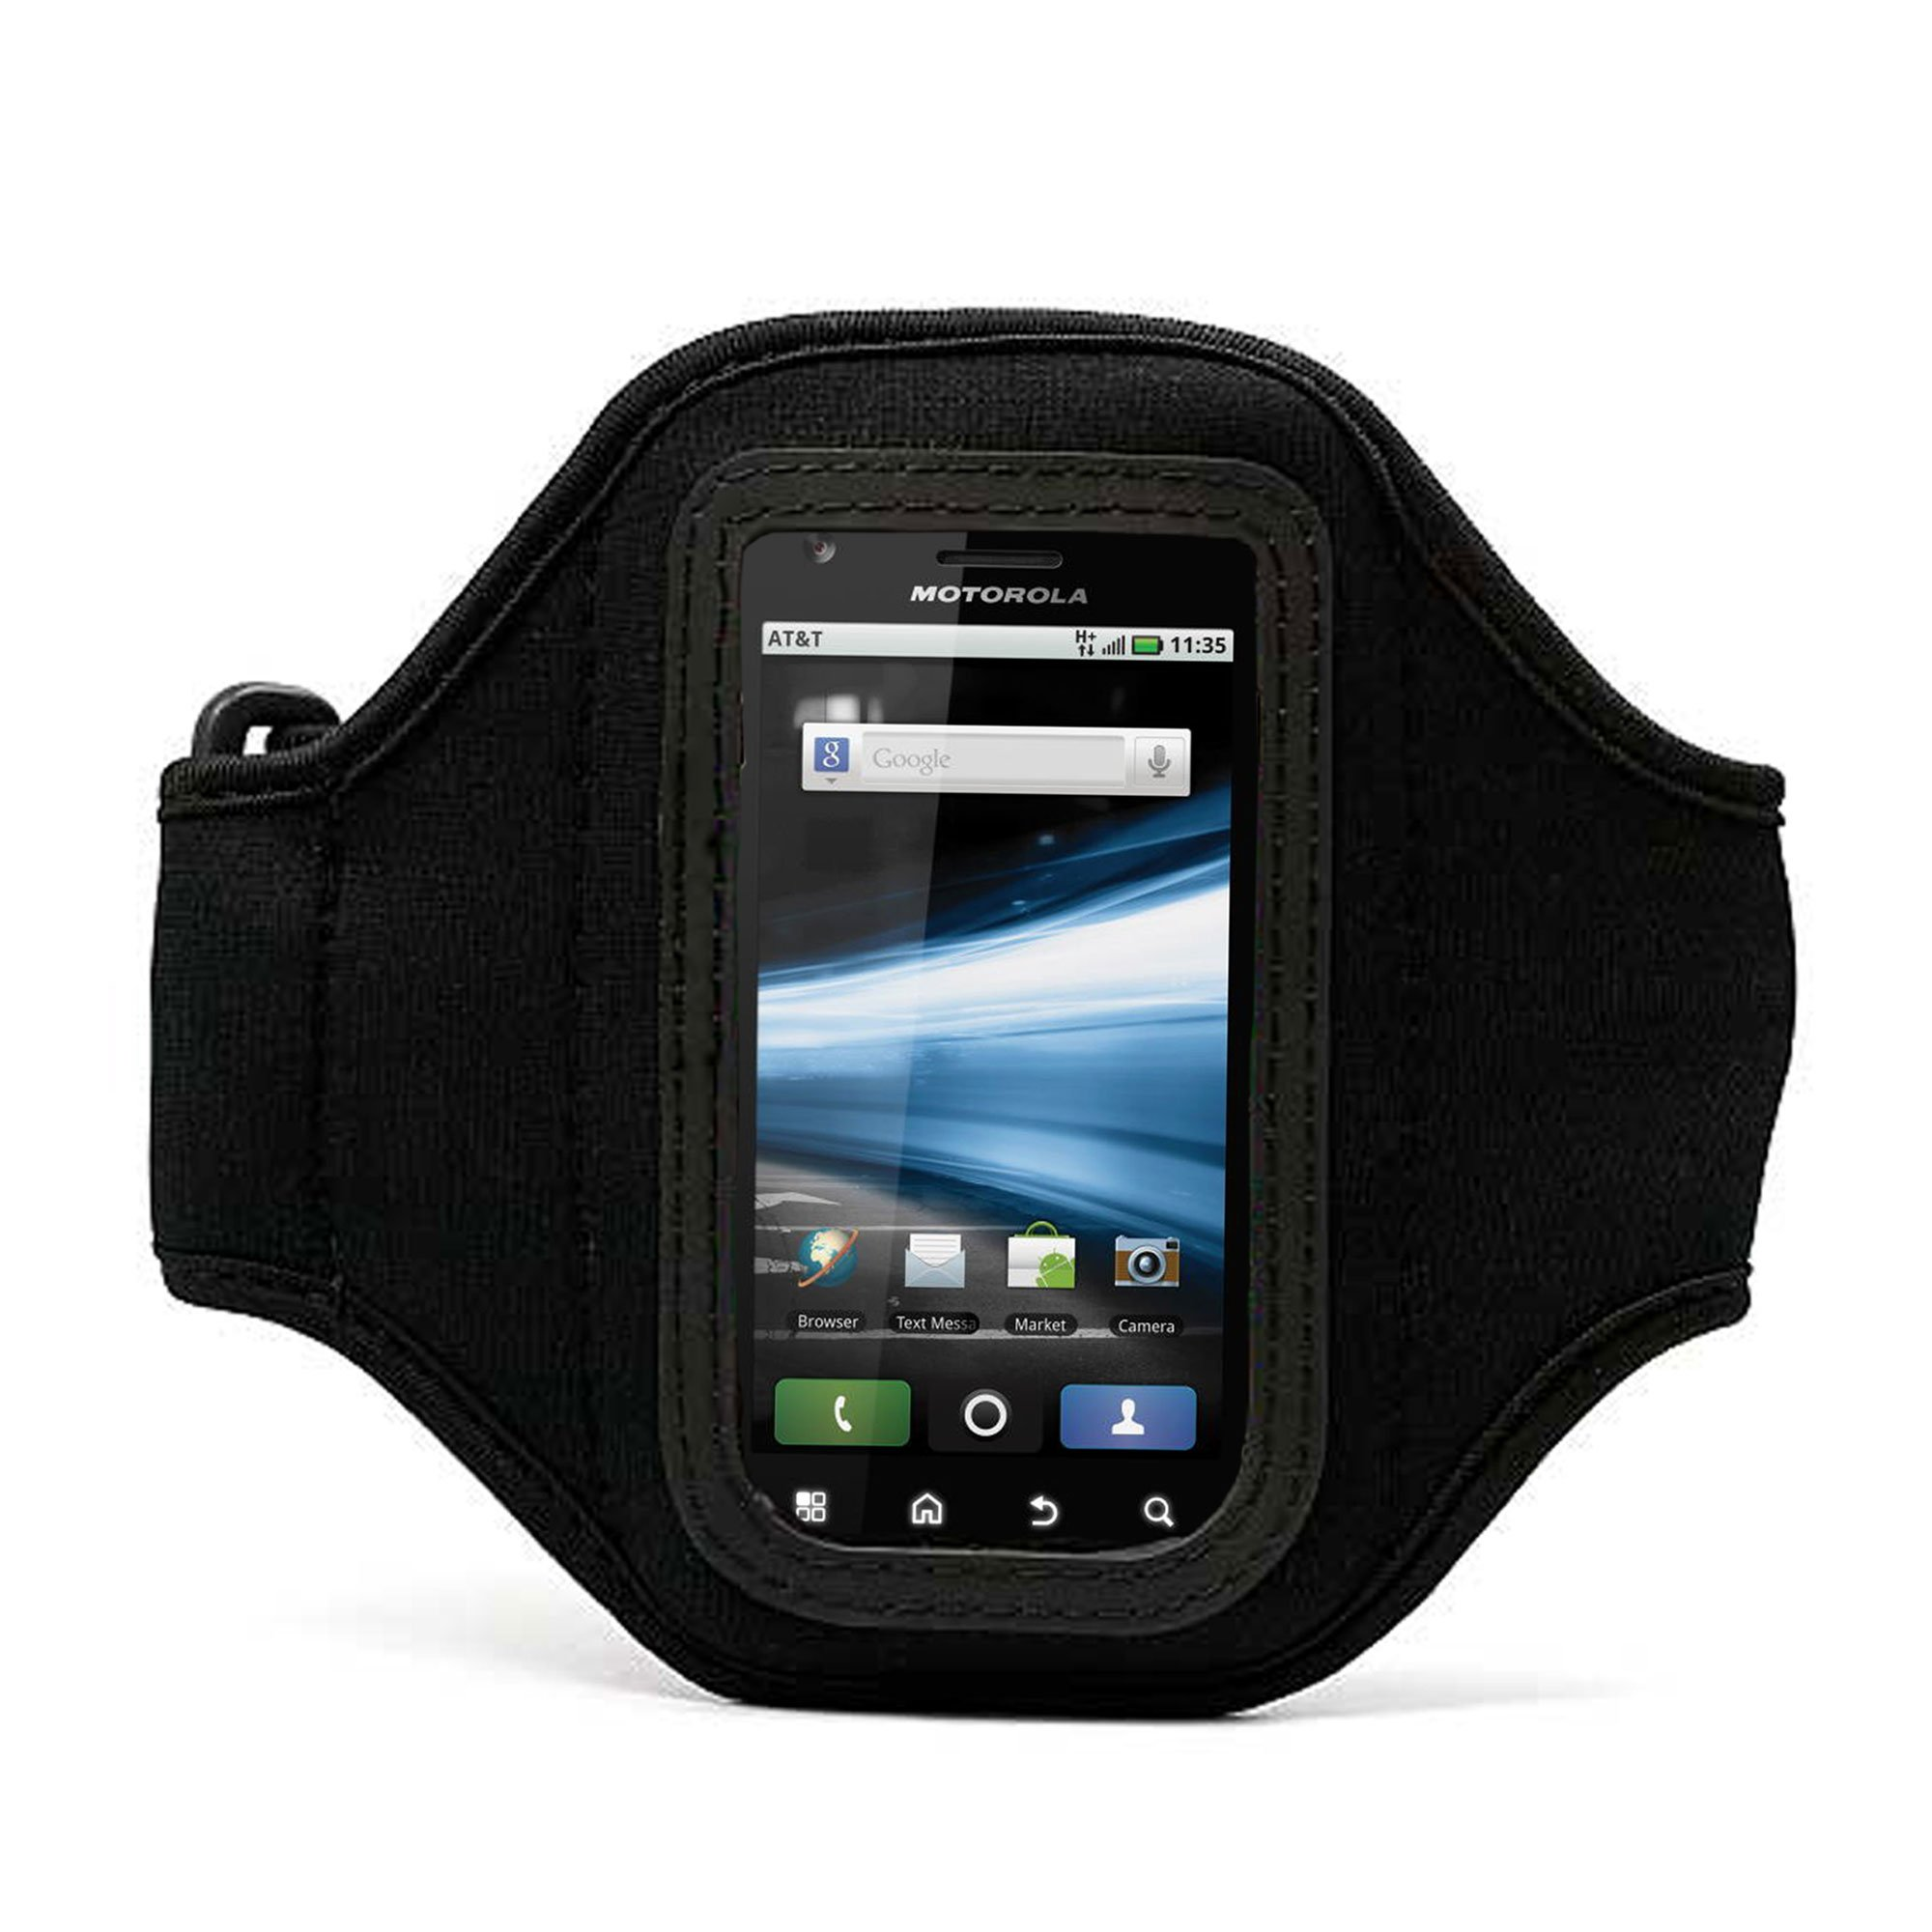 Elegant OEM VG Brand (Black) Armband with Sweat Resistant lining for HTC Droid Incredible 2 3G Android Phone + Live * Laugh * Love VanGoddy Wrist Band!!!